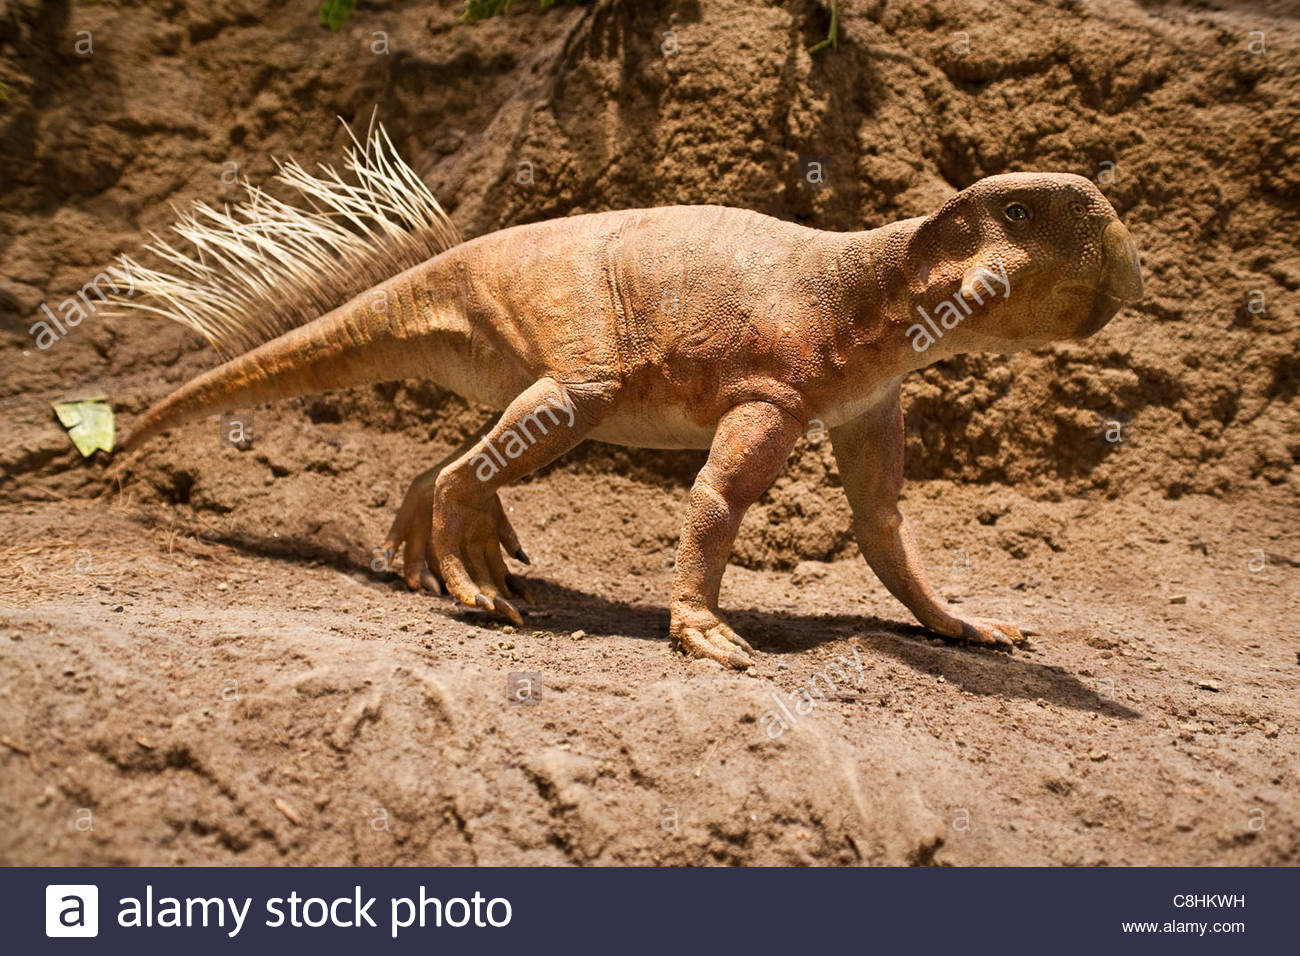 A Psittacosaurus, a meat eating horned dinosaur. - Stock Image